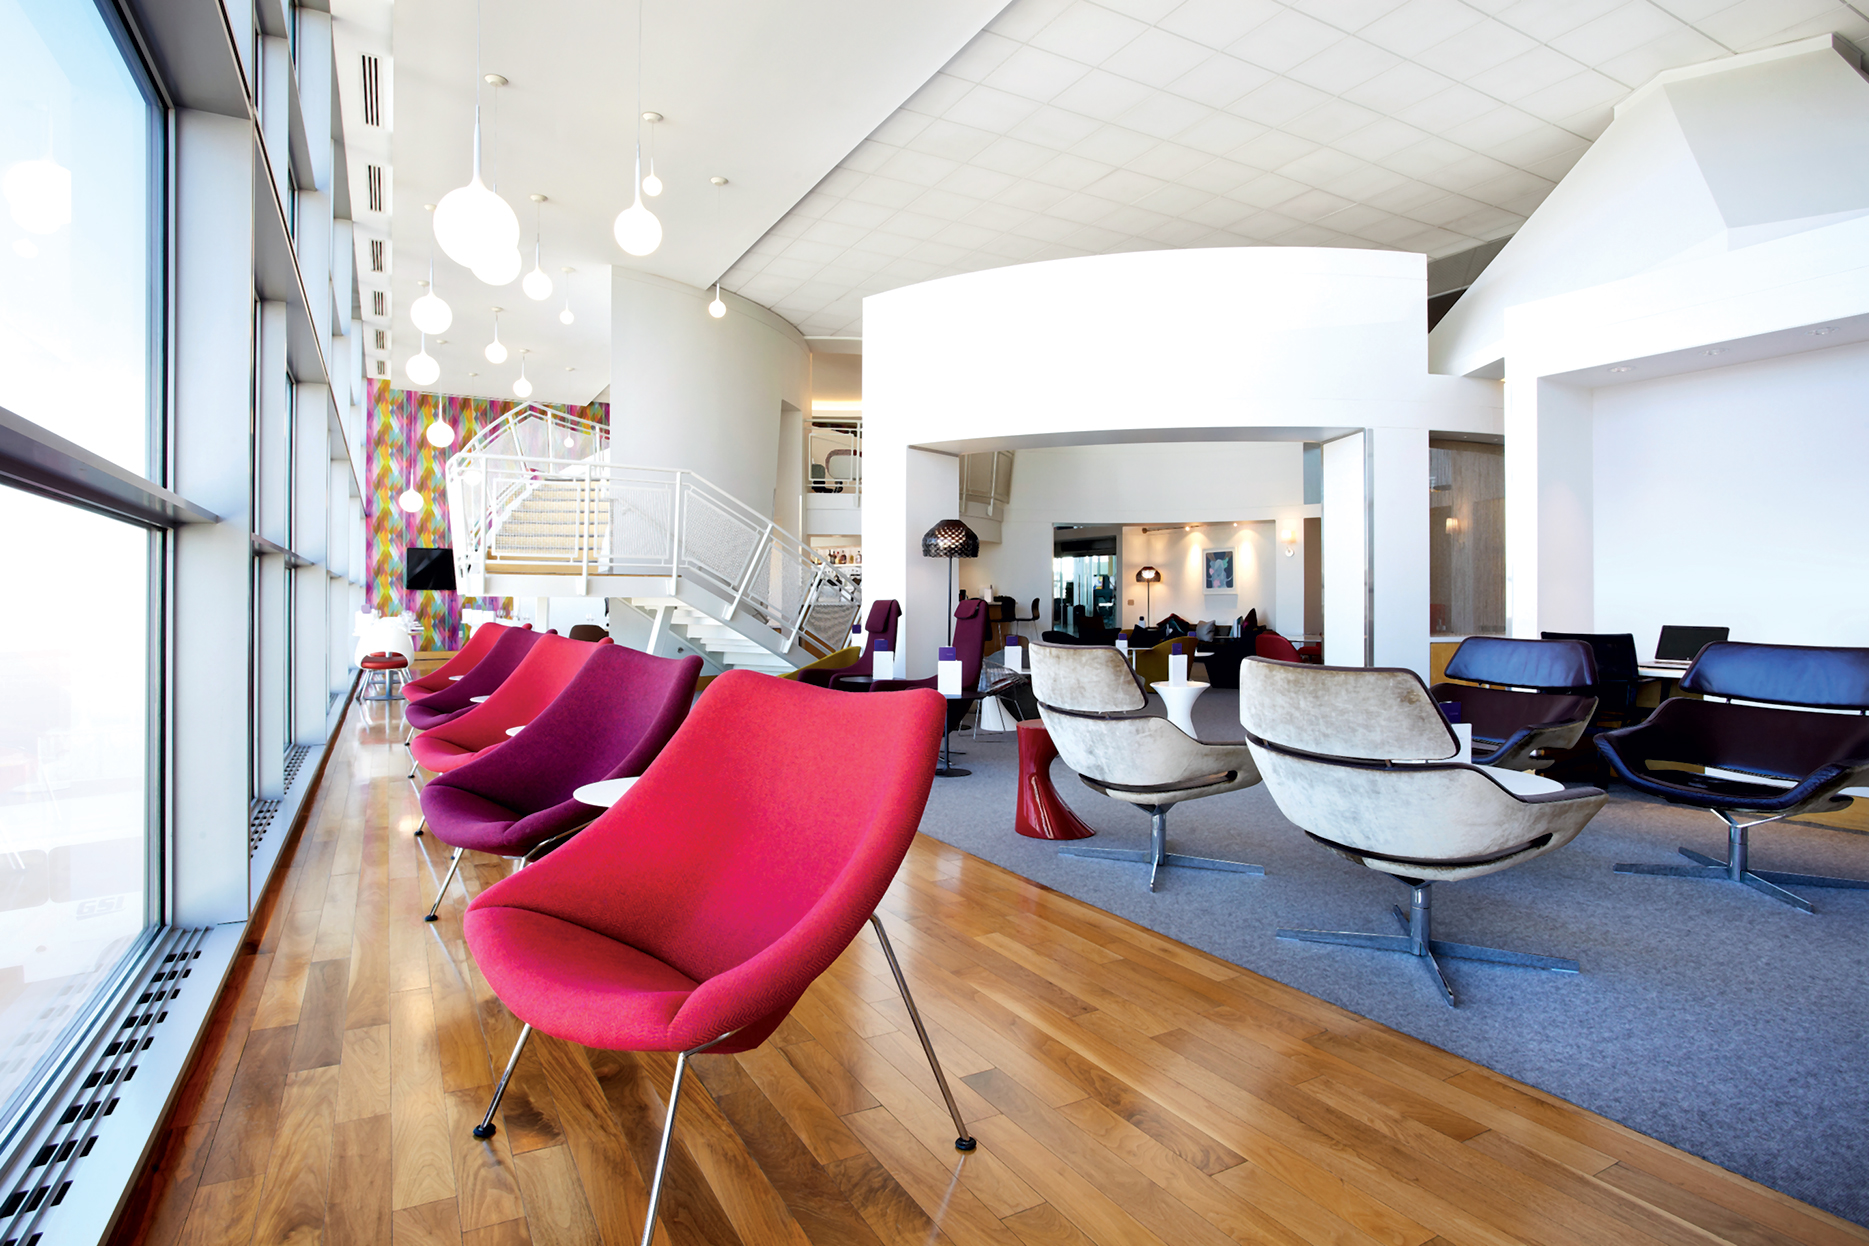 The Virgin Atlantic lounge at Dulles. Photograph courtesy of Virgin Atlantic.